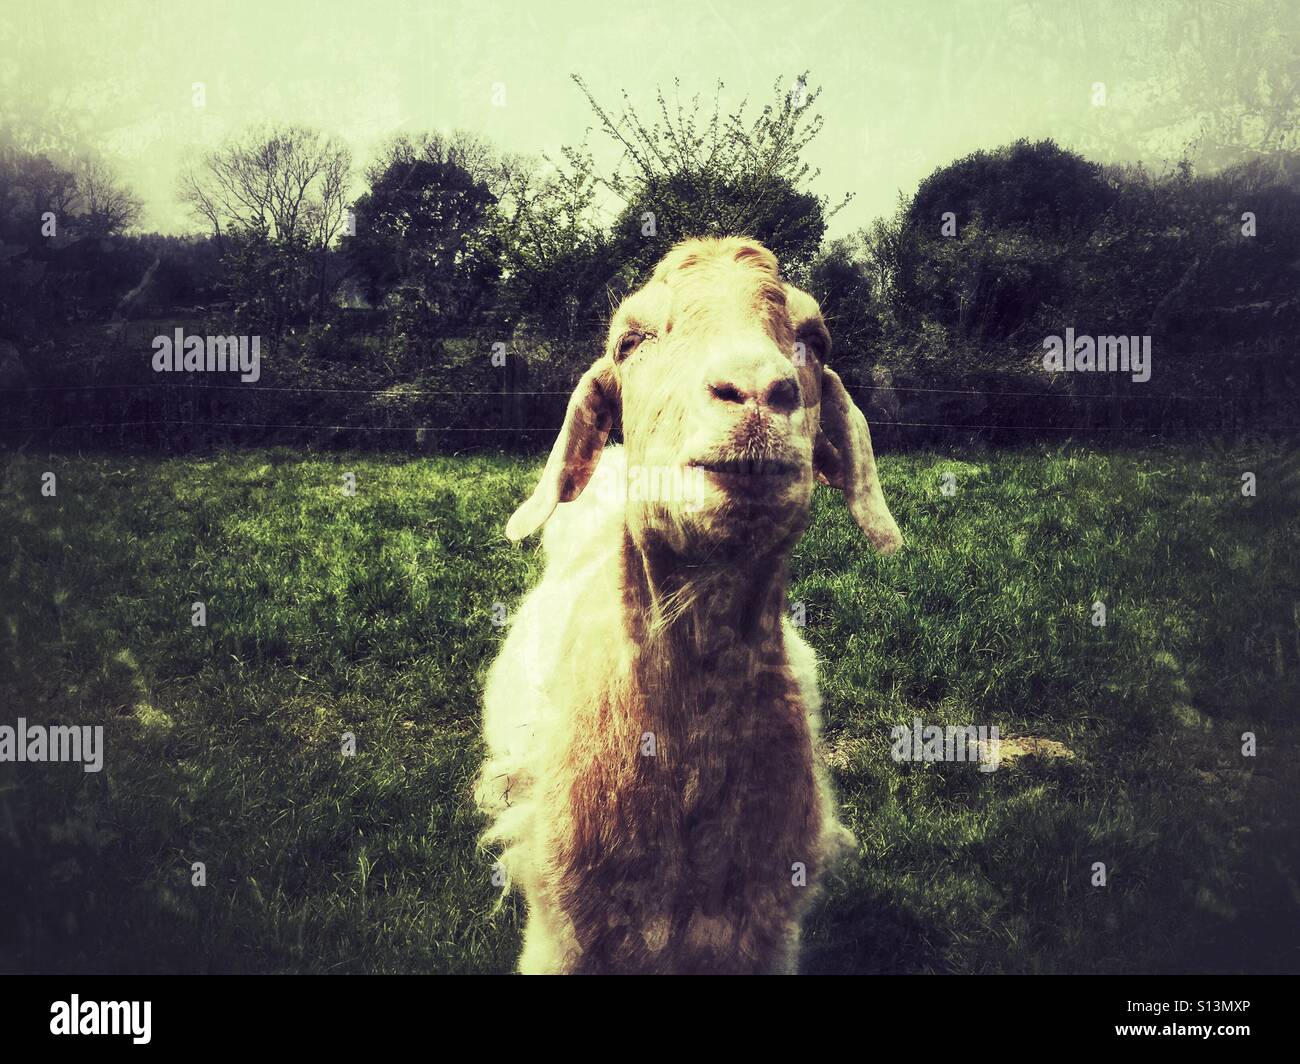 Grunge Camera Effect : A goat looking at the camera with a grunge effect filter stock